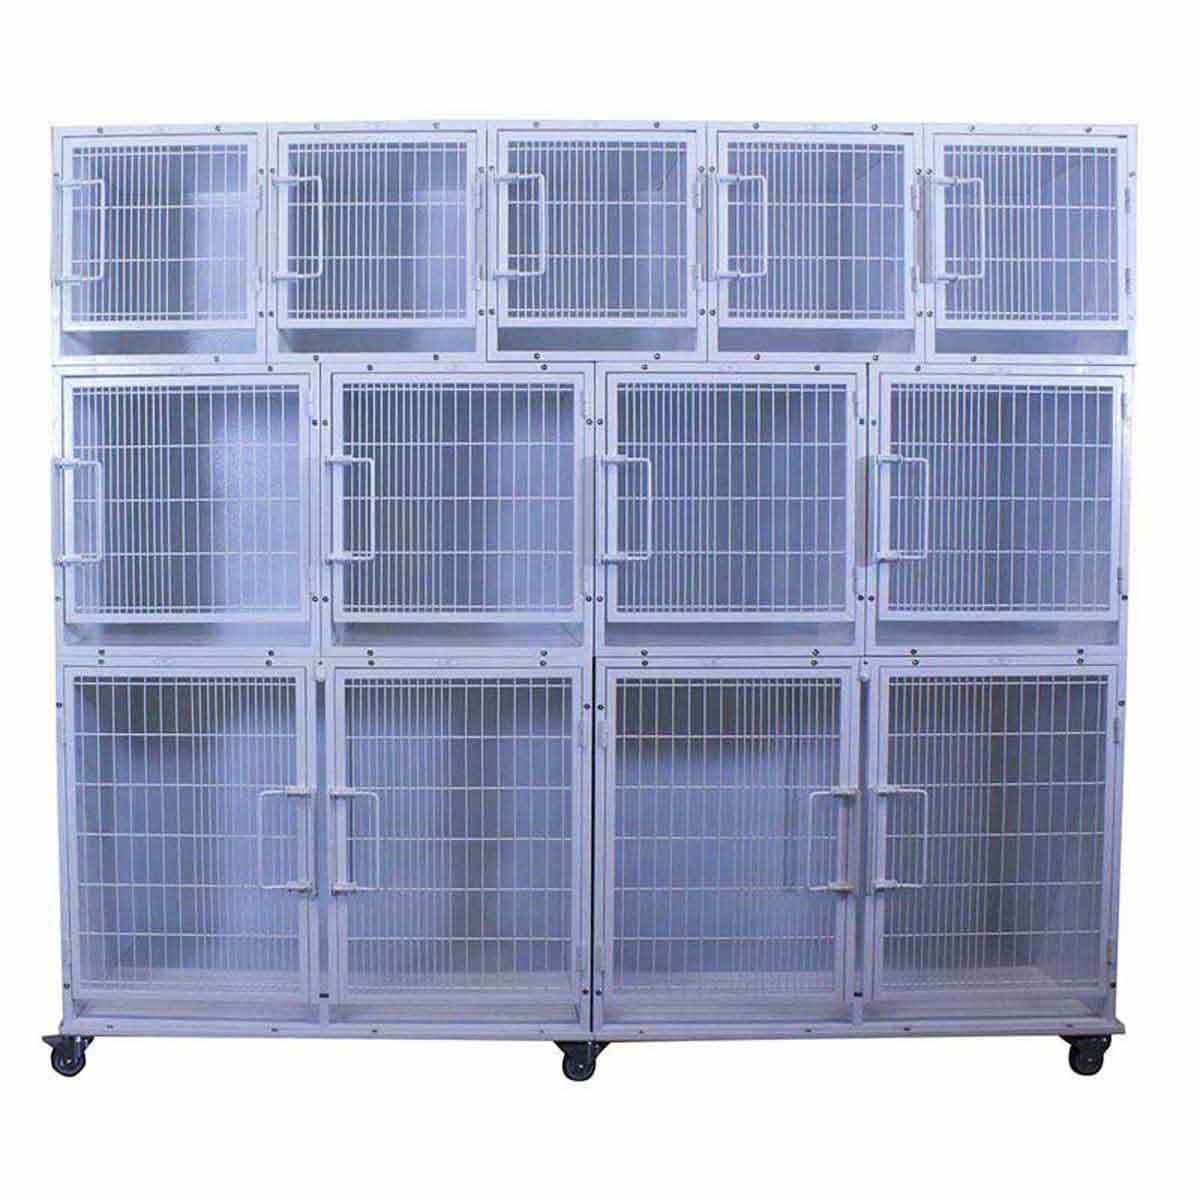 Paw Brothers Professional Modular Cage Bank & Full Frame without Grates, Pans